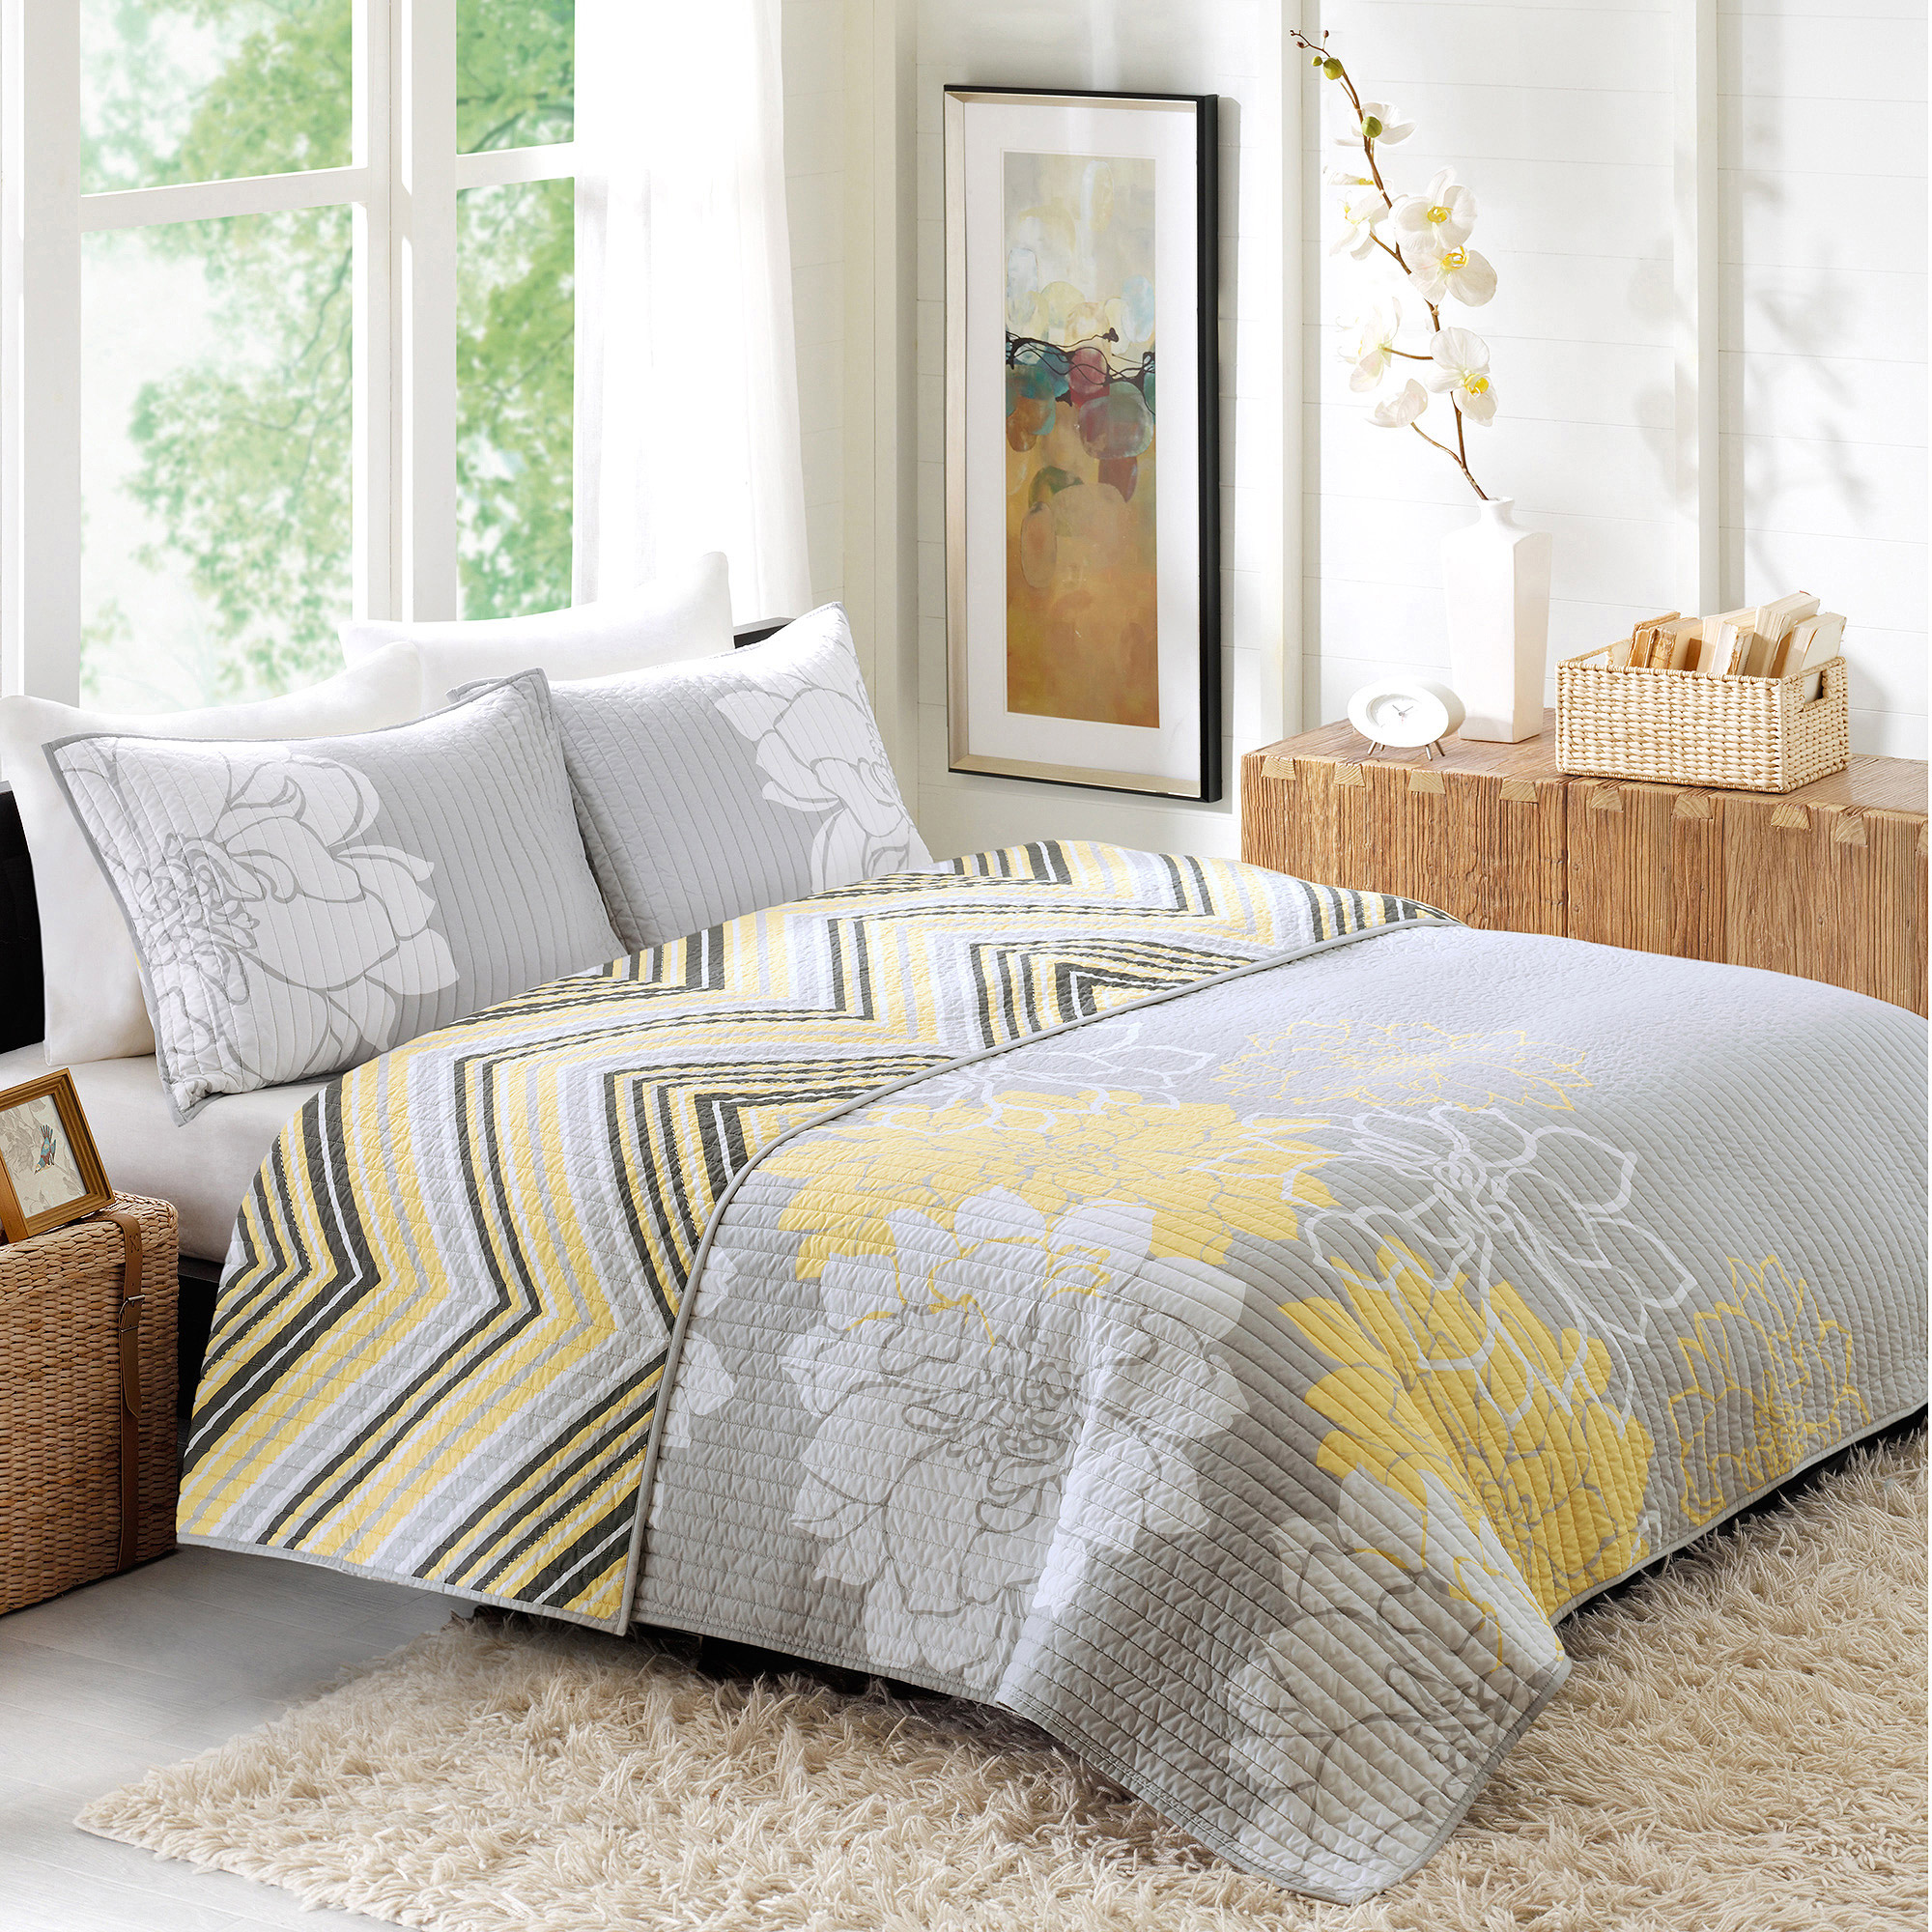 Better Homes And Gardens Quilt Collection Yellow Floral Walmart Com